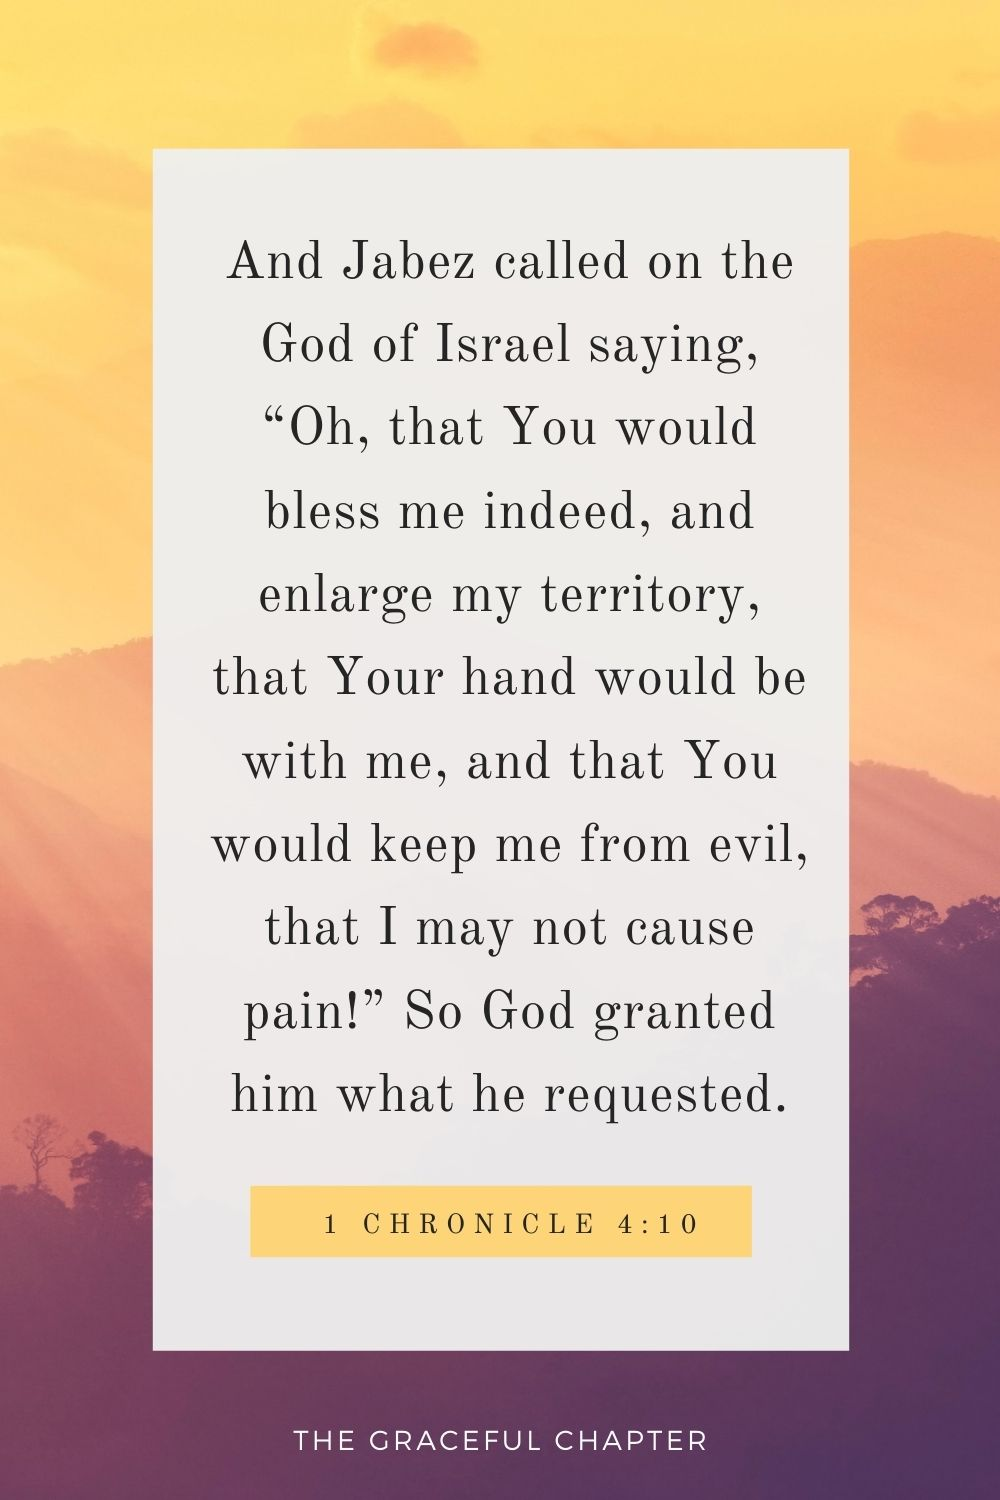 """And Jabez called on the God of Israel saying, """"Oh, that You would bless me indeed, and enlarge my territory, that Your hand would be with me, and that You would keep me from evil, that I may not cause pain!"""" So God granted him what he requested. 1 Chronicle 4:10"""